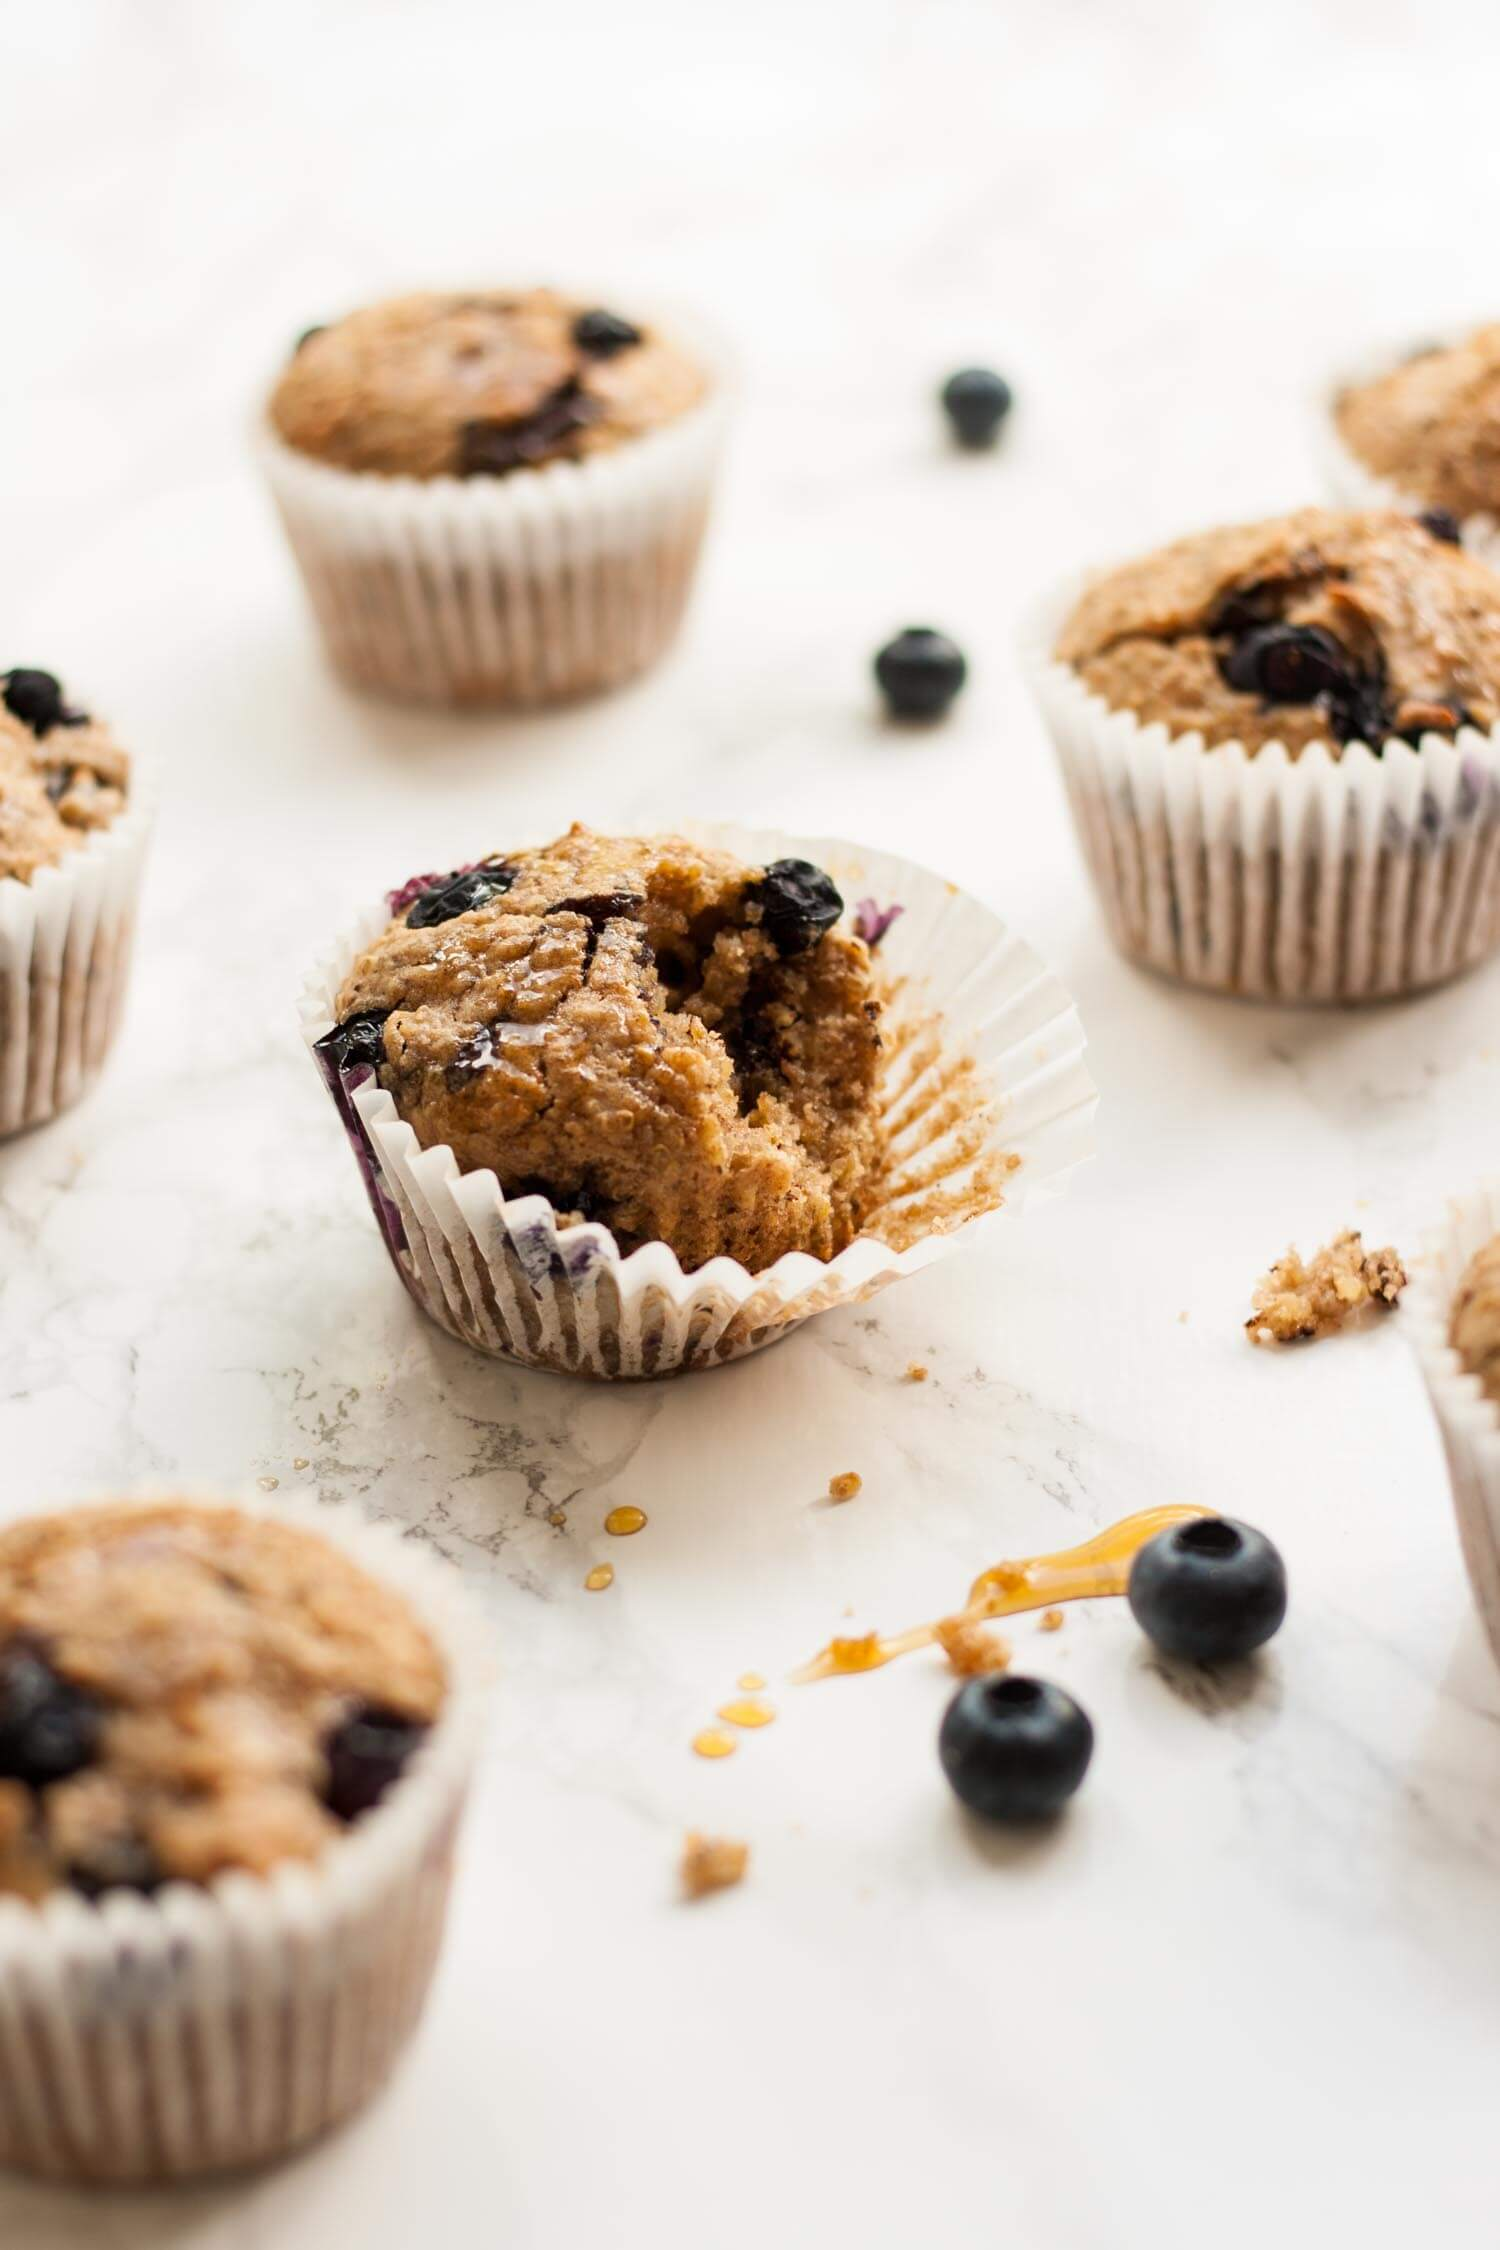 Quinoa Spelt Blueberry Breakfast Muffins - these easy breakfast muffins are full of goodness and taste amazing with a drizzle of warmed maple syrup! | eatloveeats.com